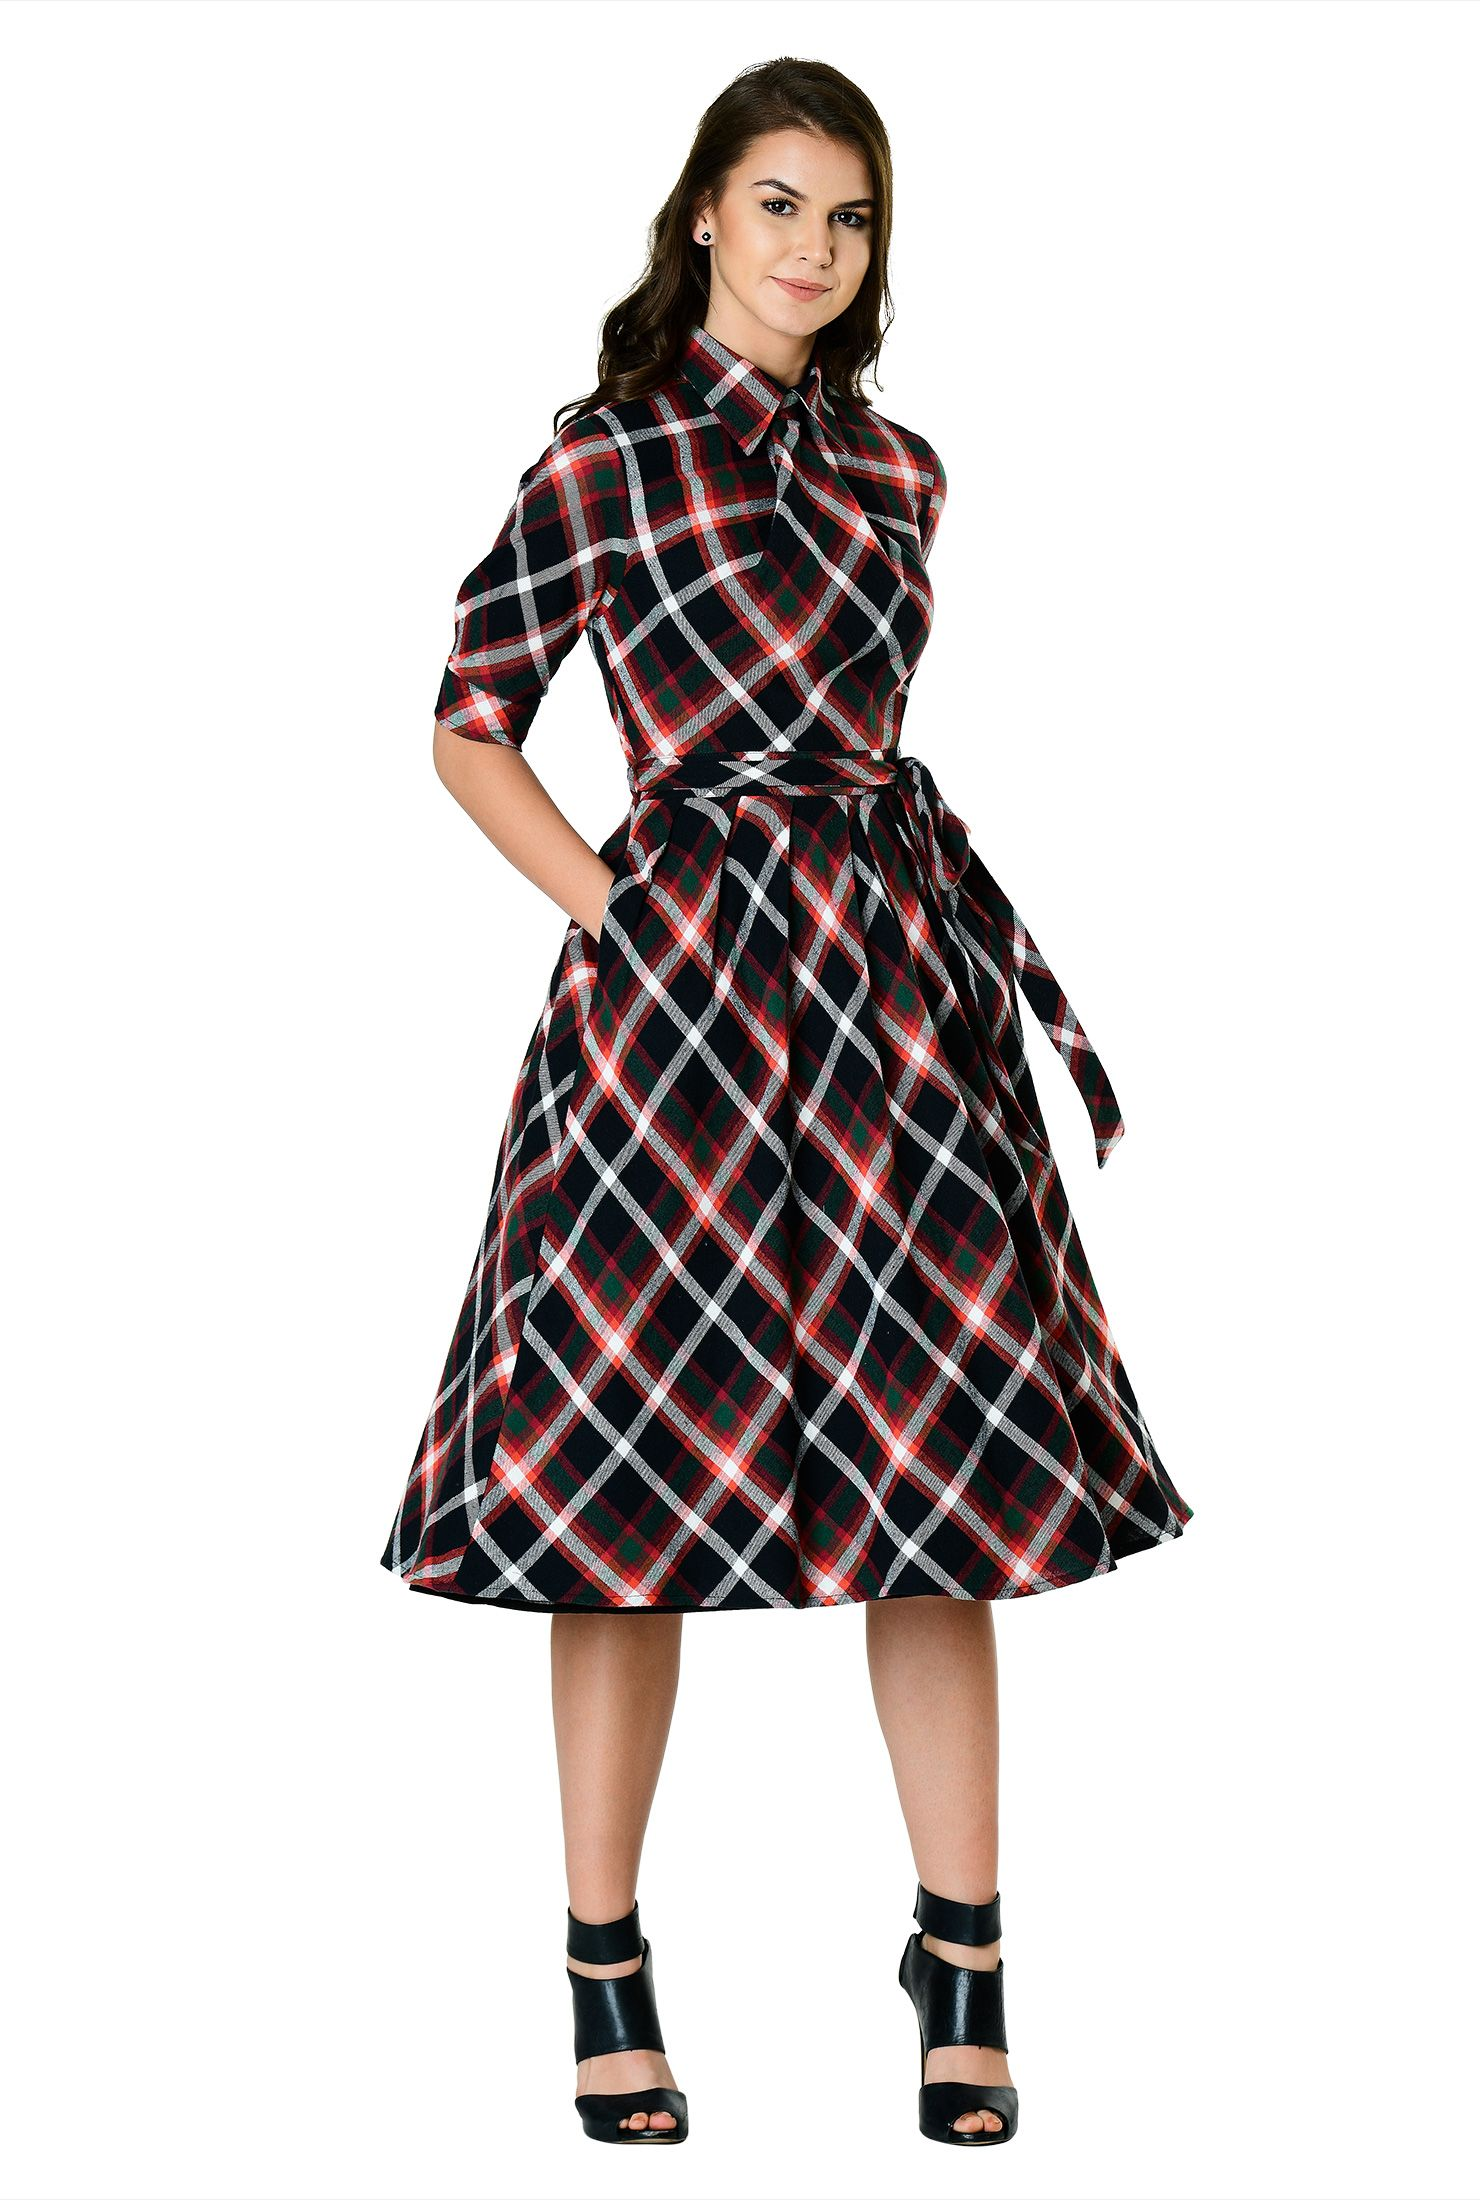 90a0816f4fb Our cotton twill check dress with a knot and angled pleats from the spread  collar is cinched with a removable self-sash tie belt above an inverse  pleat full ...